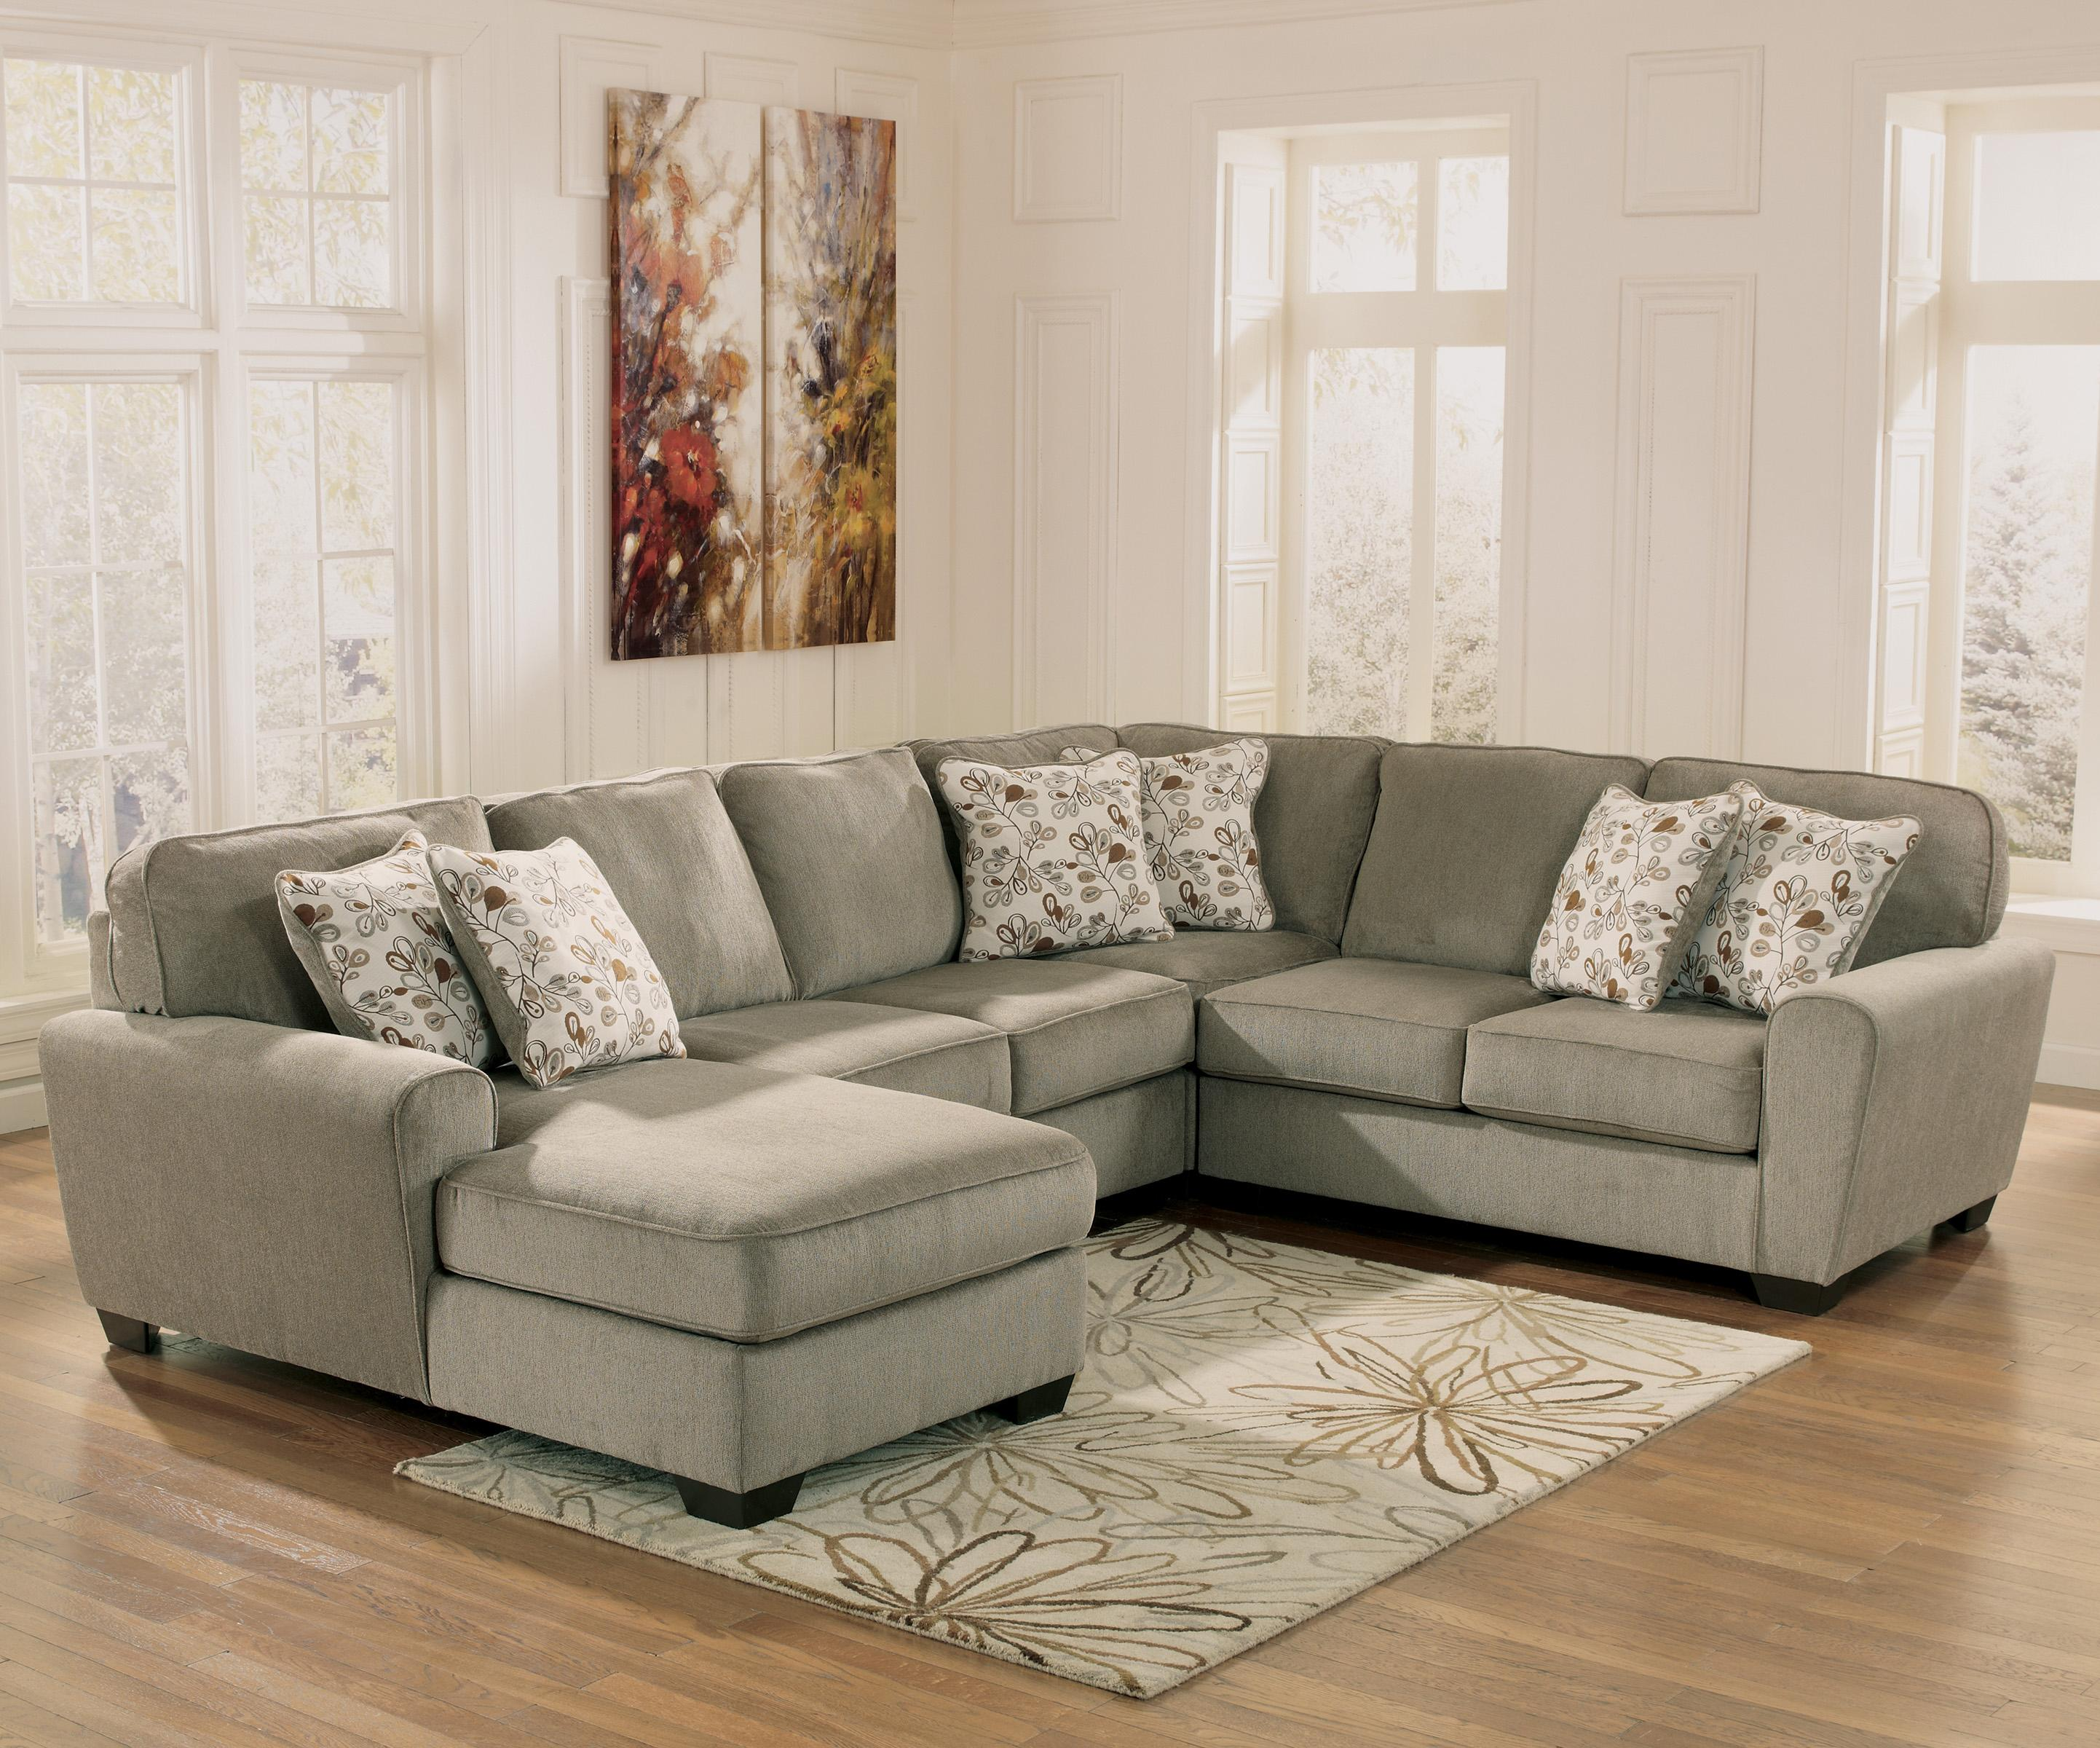 Patola Park - Patina 4-Piece Small Sectional with Left Chaise by Ashley Furniture at Lapeer Furniture & Mattress Center